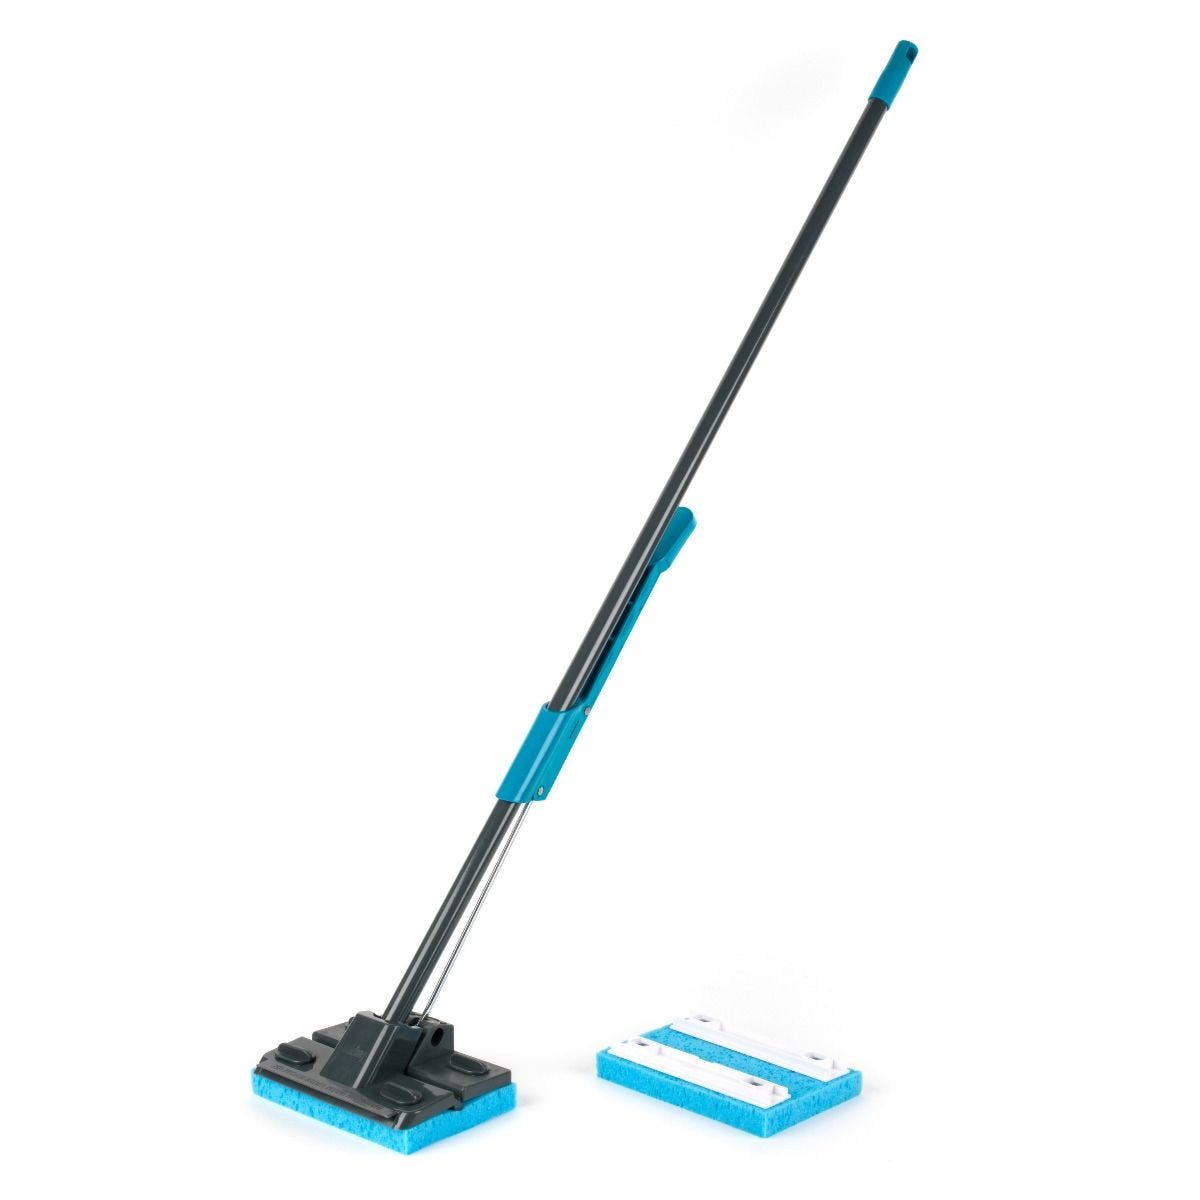 Beldray Sponge Mop with Long Handle and Extra Sponge Head - Black / Blue